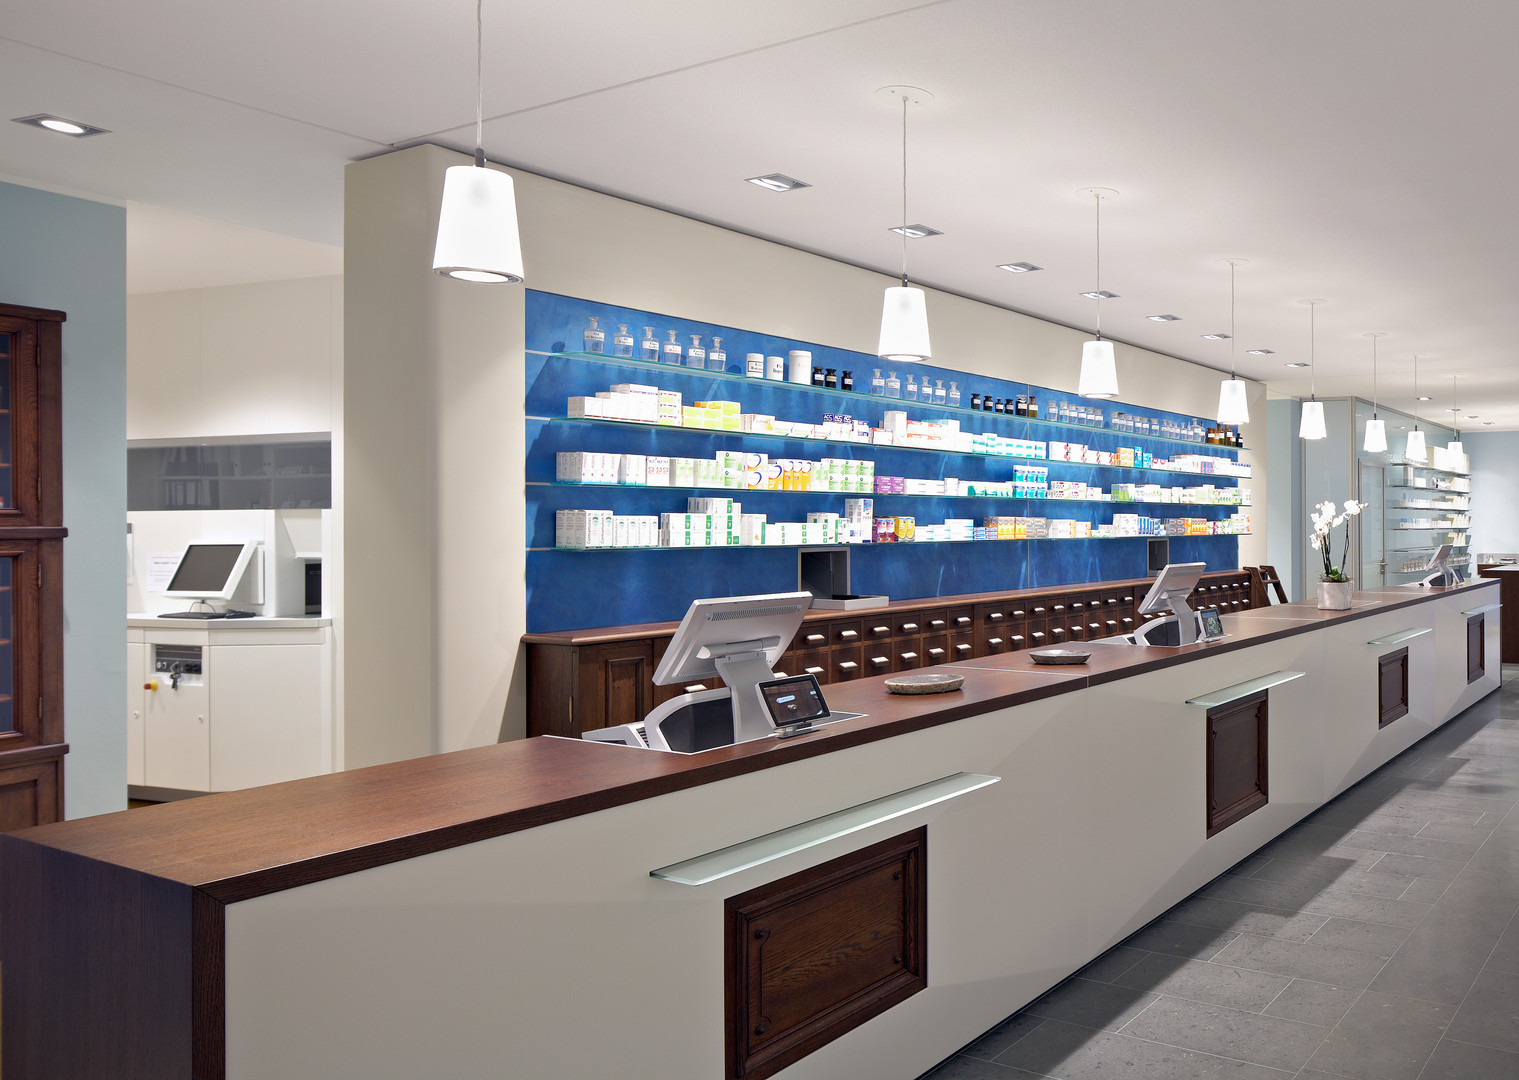 interior-of-empty-modern-pharmacy-2EQNLF